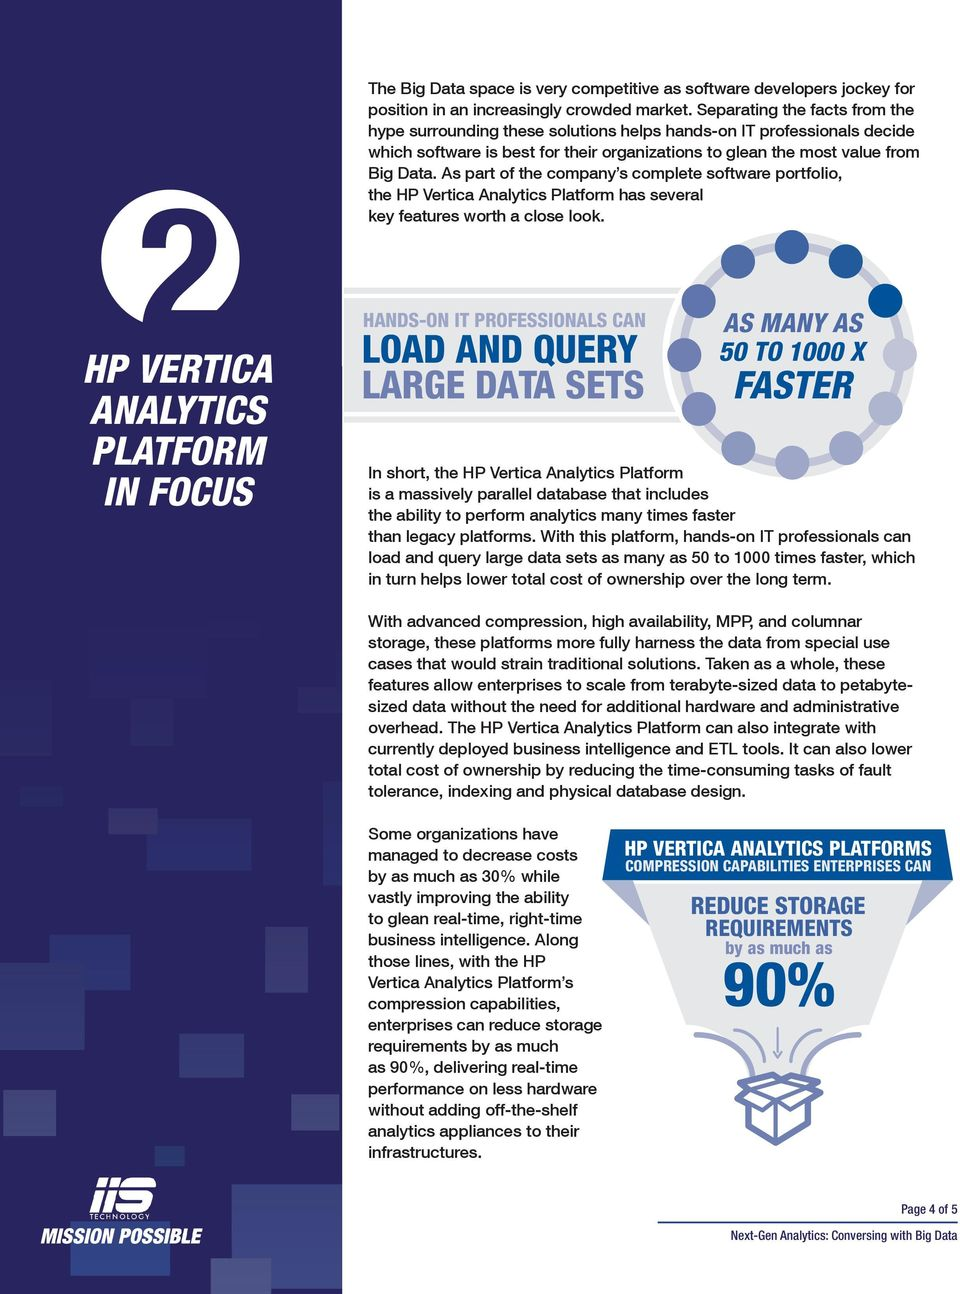 As part of the company s complete software portfolio, the HP Vertica Analytics Platform has several key features worth a close look.